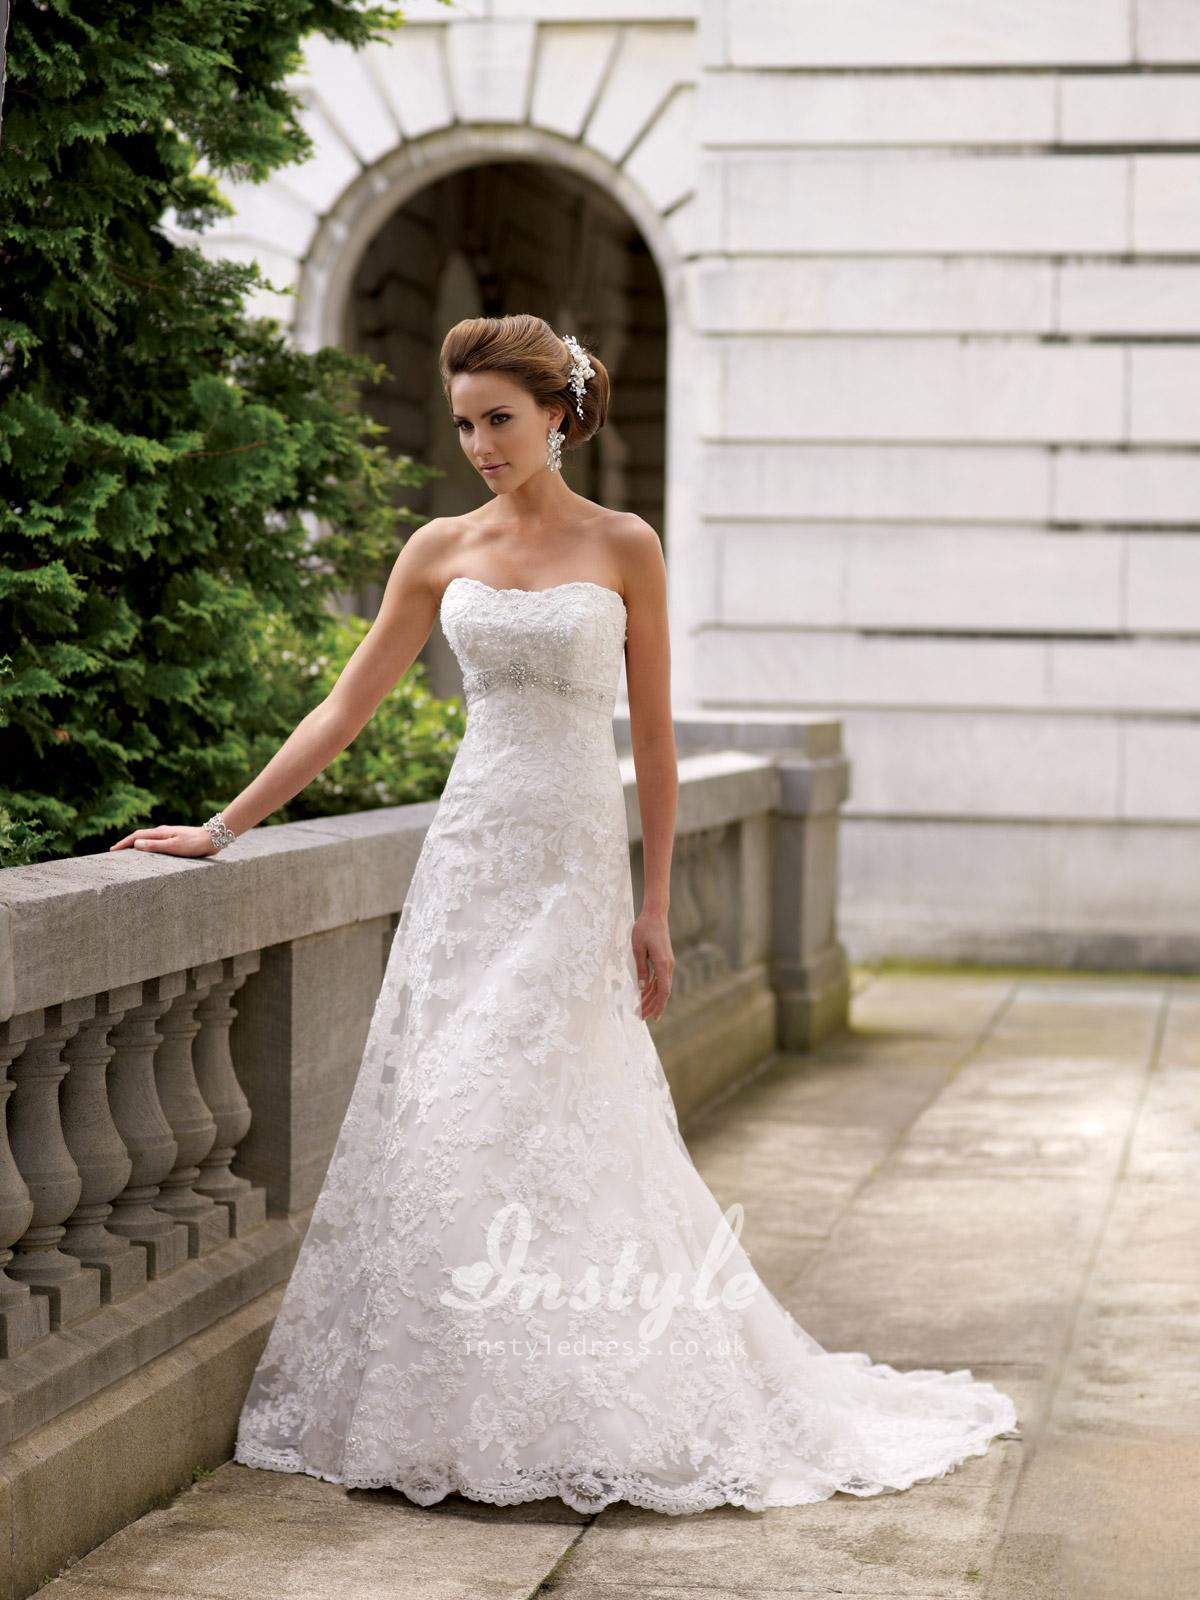 Wedding Gowns A Line Strapless : Strapless lace wedding dresses style to look classical vintage